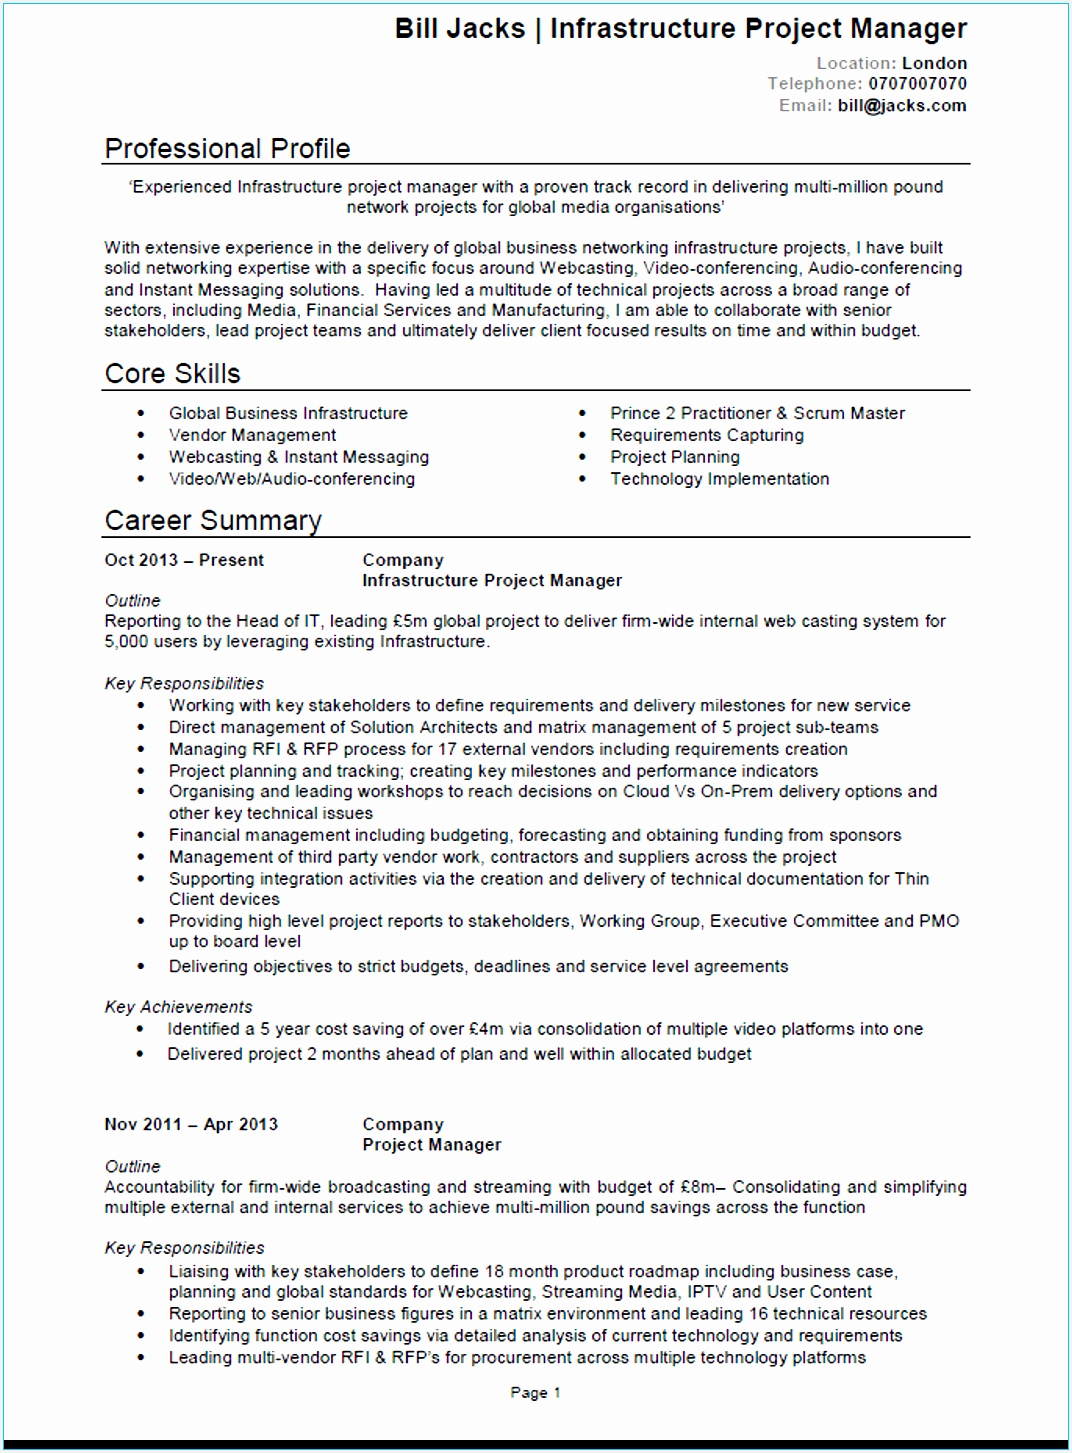 Project Manager CV example14531072